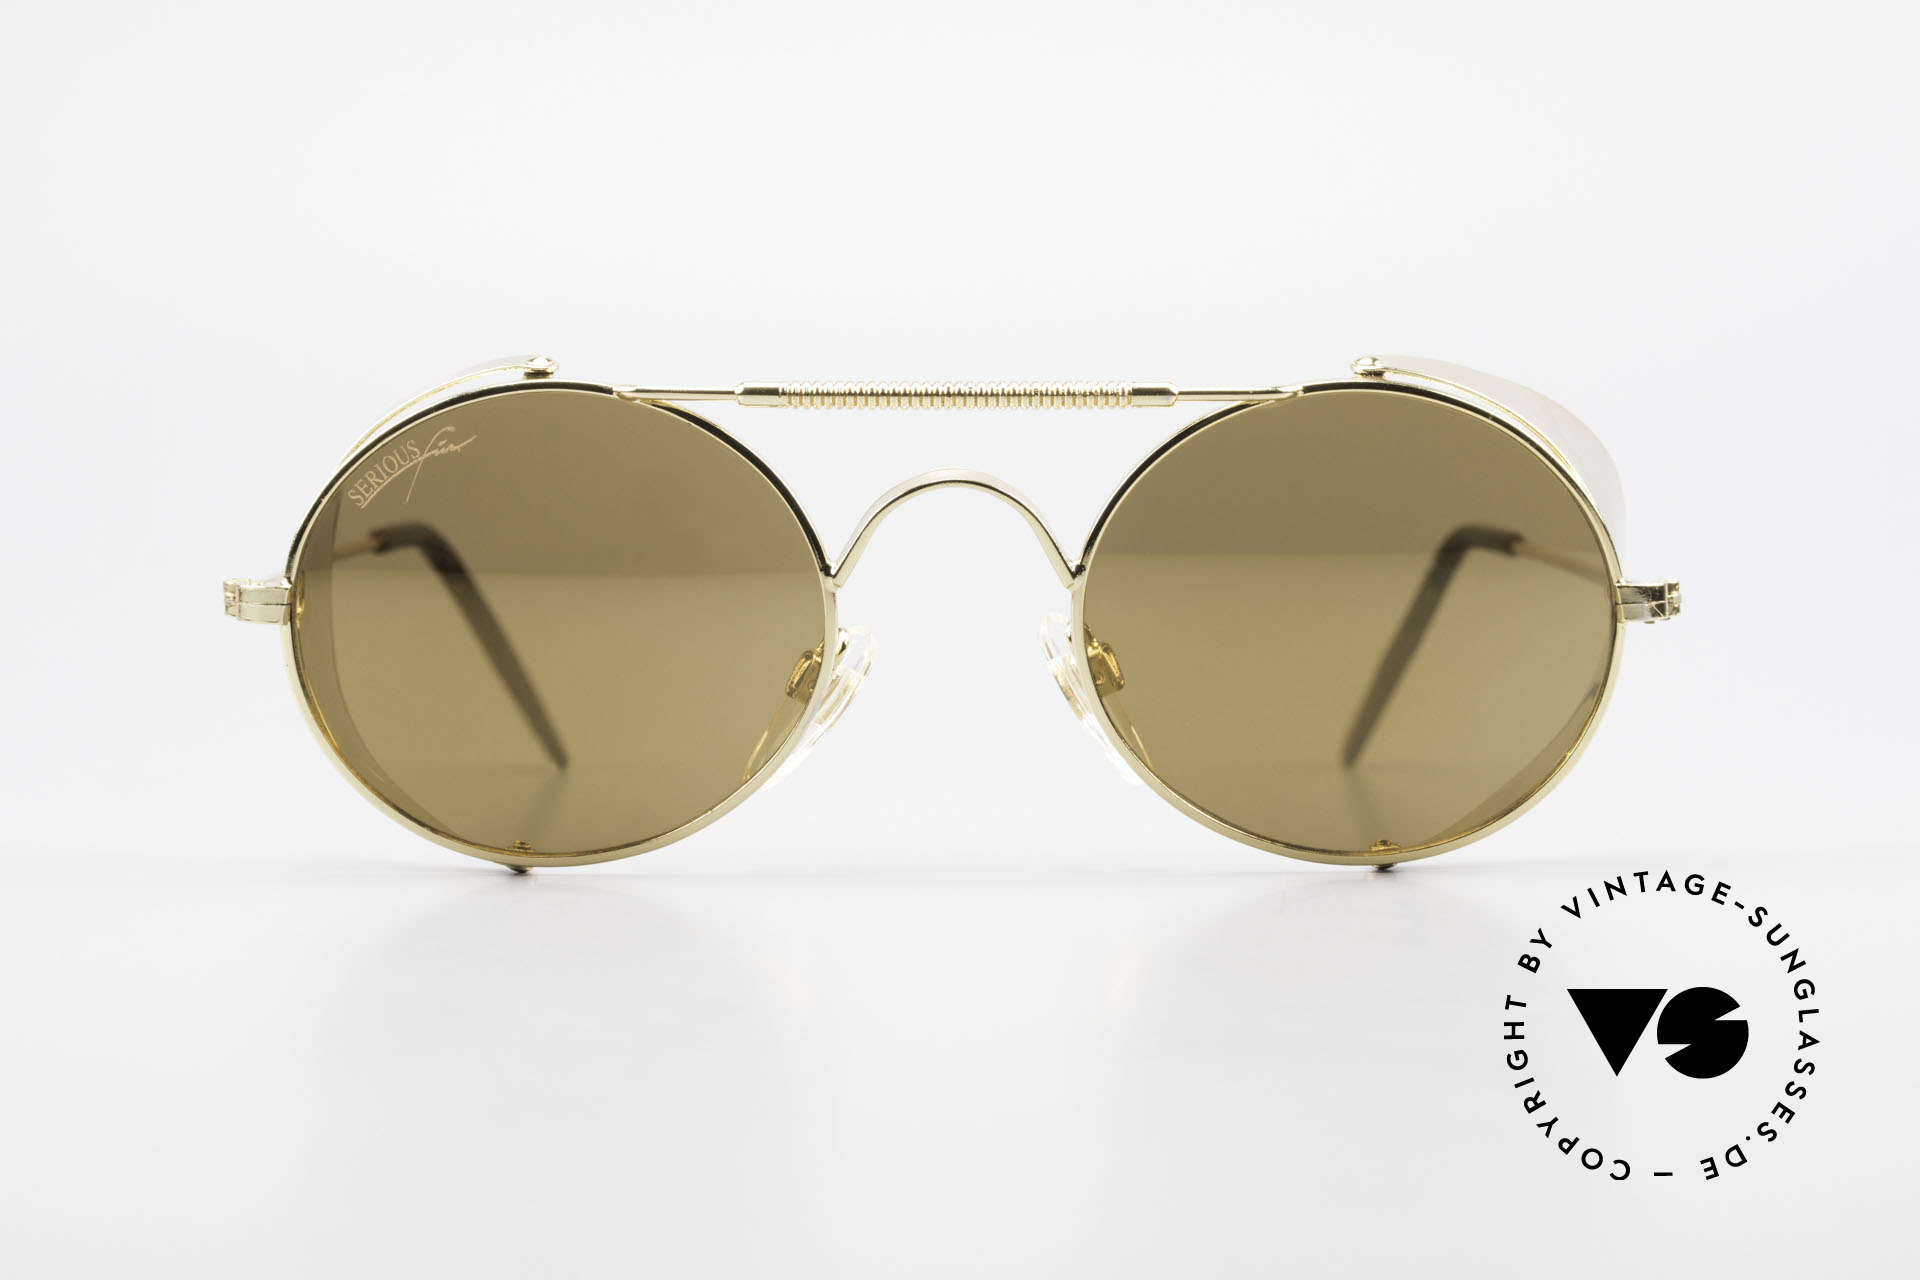 Serious Fun Frogman Steampunk Sunglasses Gold, eye-catching sunglasses (Steampunk style) from 1995, Made for Men and Women